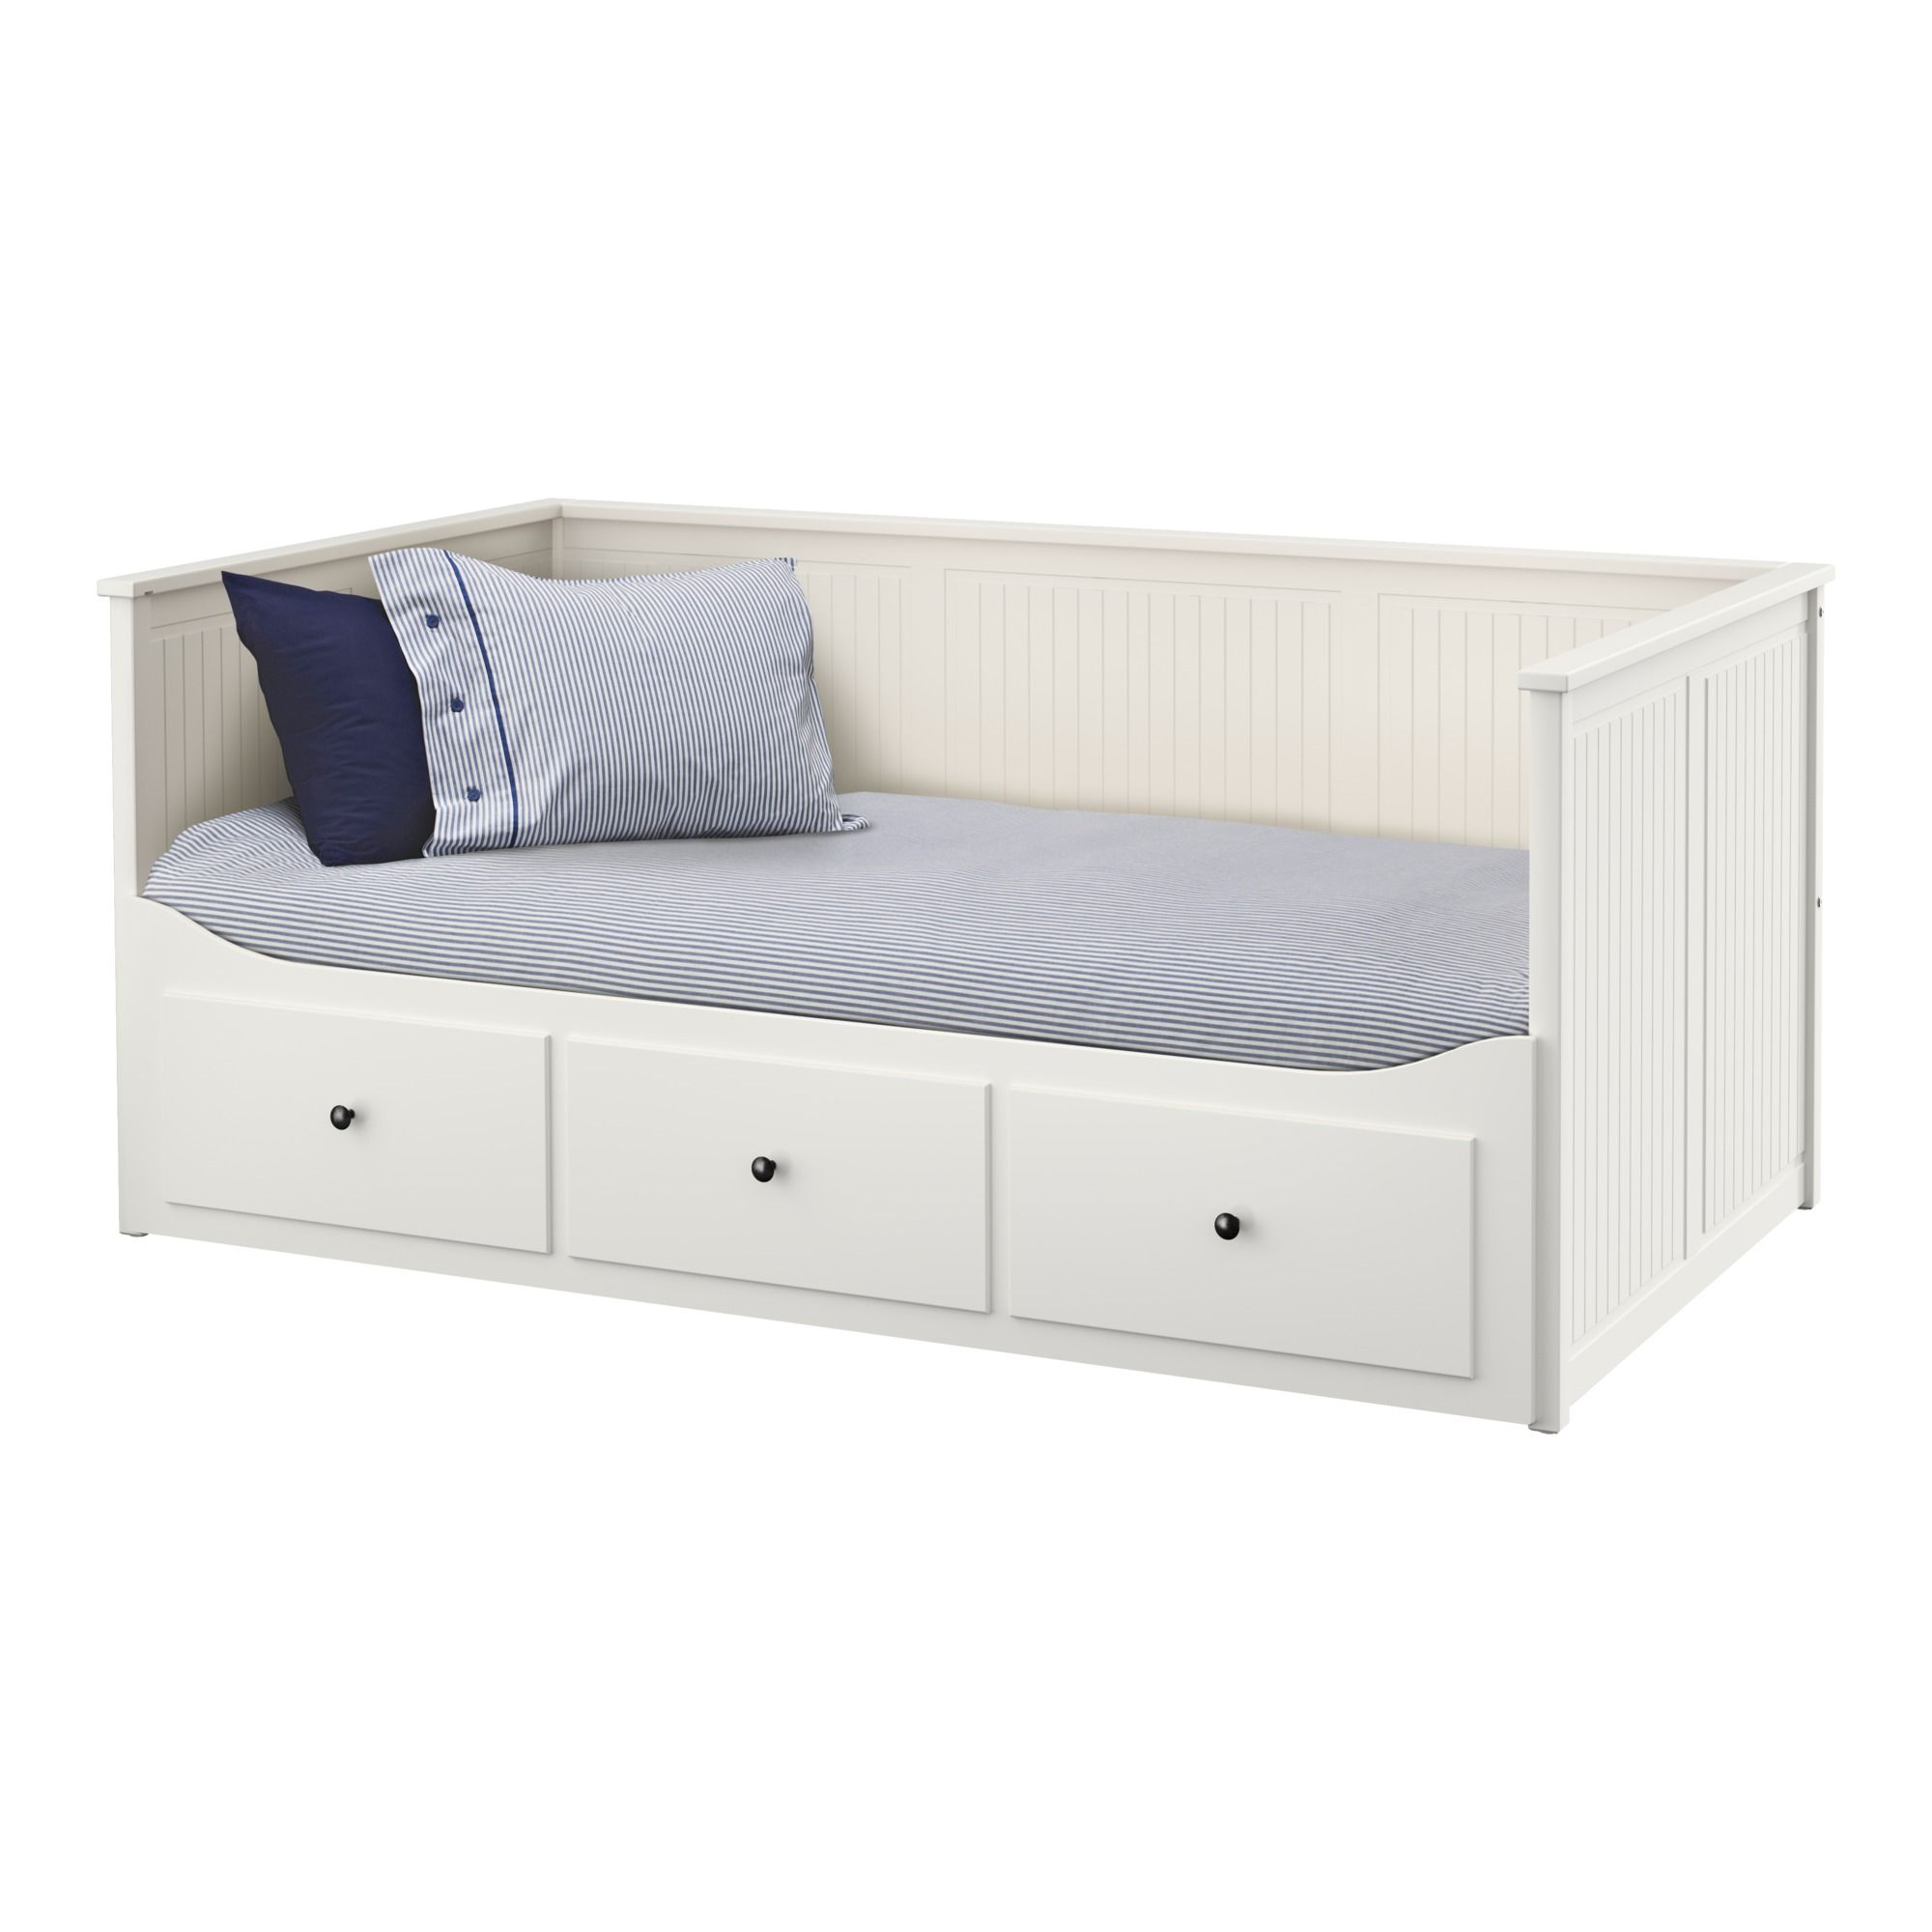 Lits D Appoint Ikea Hemnes Daybed Frame With 3 Drawers Ikea Boys Room Ideas Lit